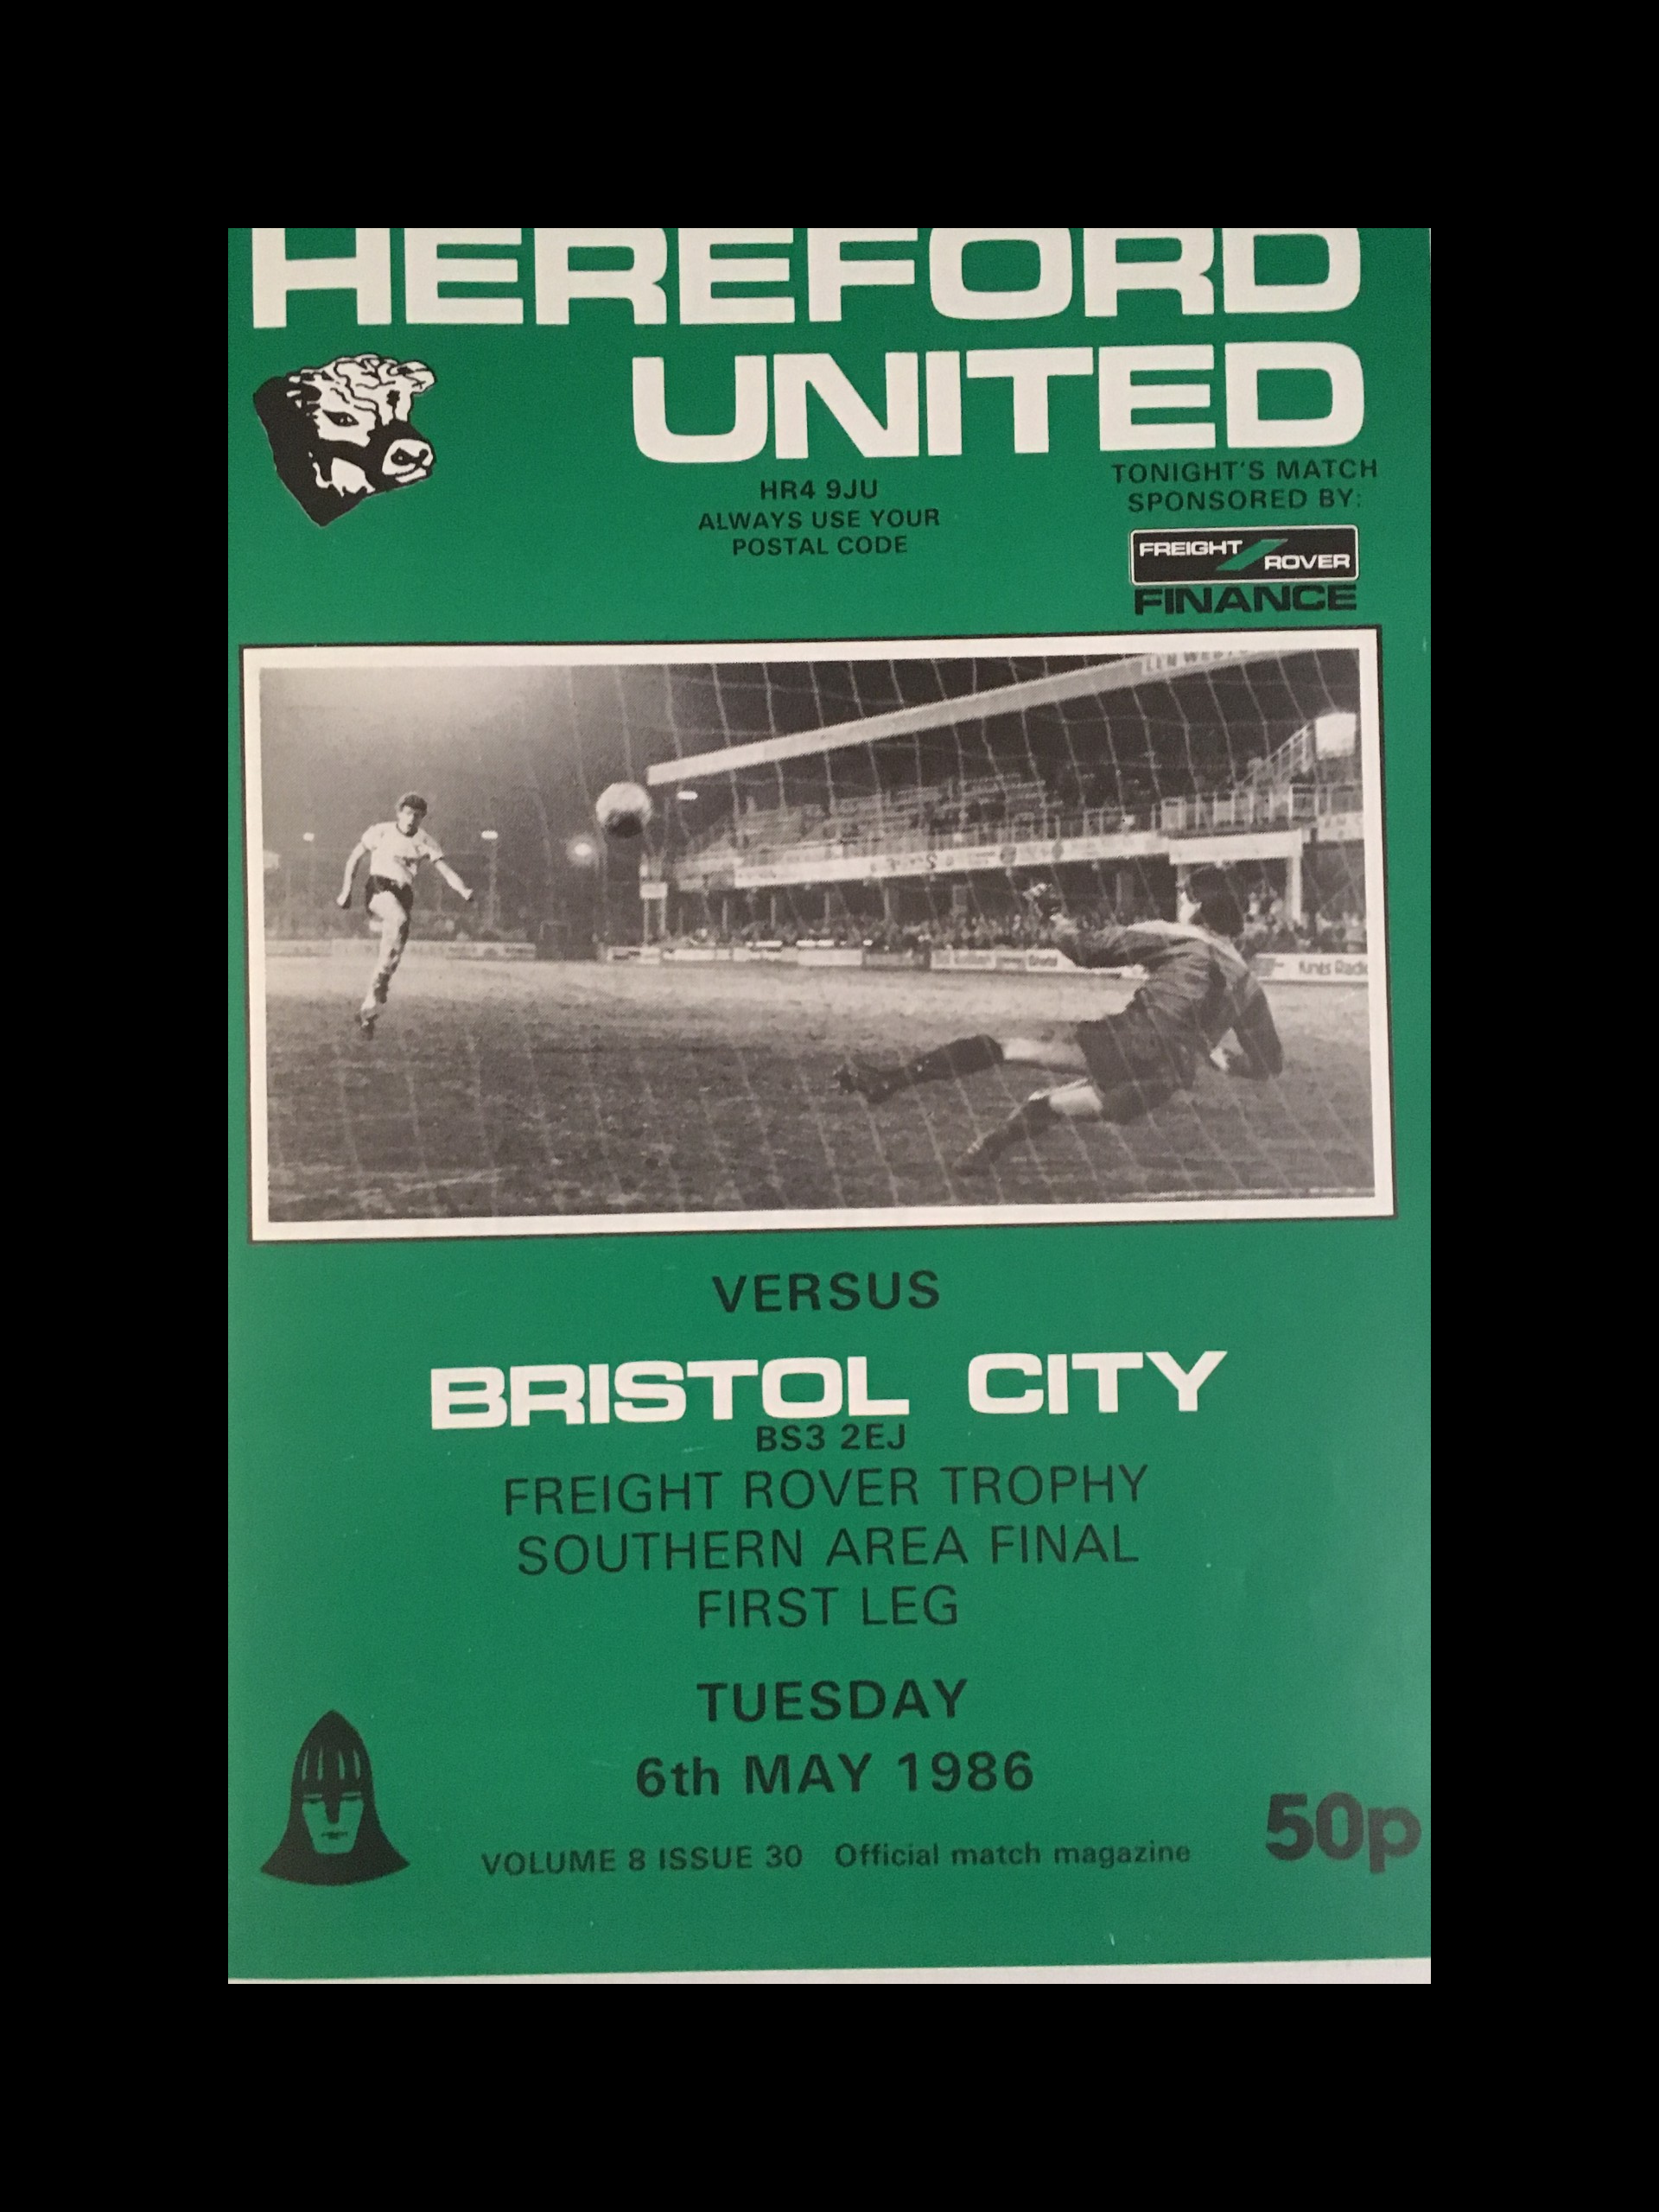 Hereford United v Bristol City 06-05-86 Programme